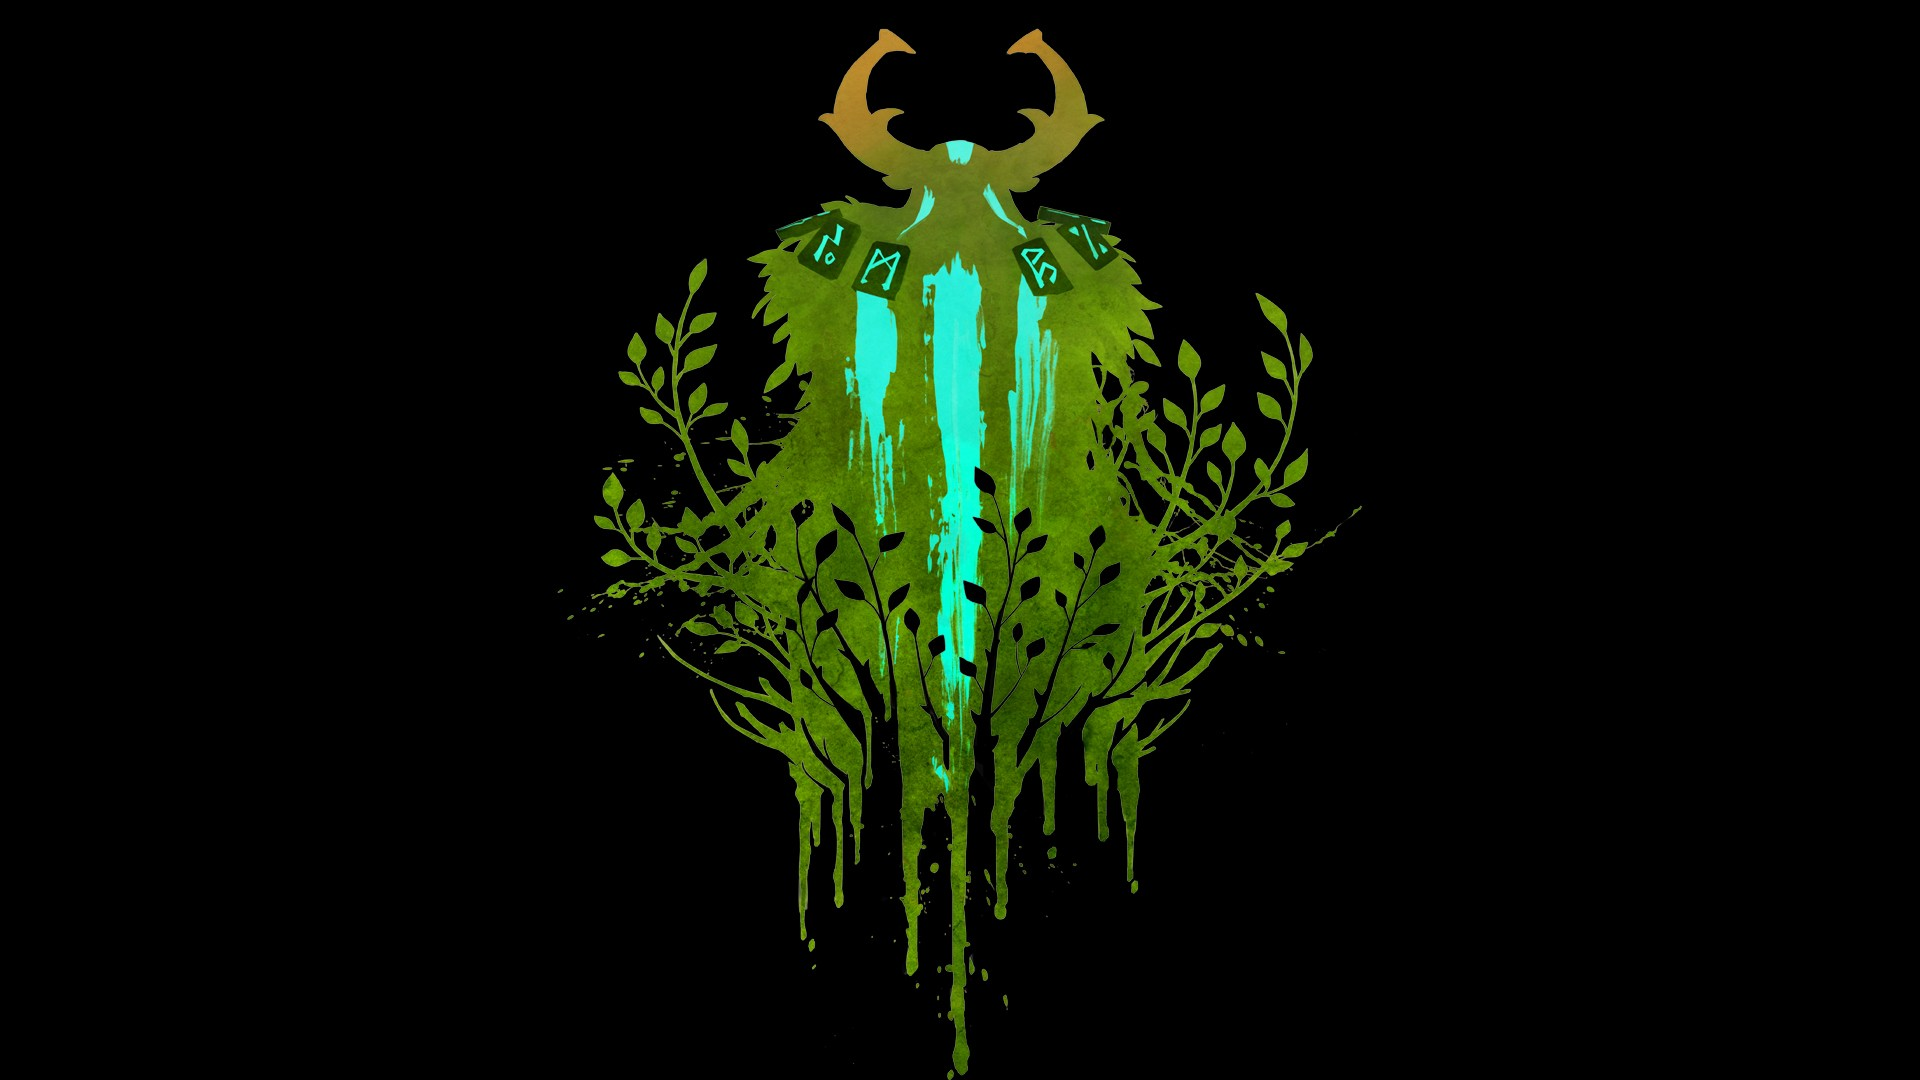 Nature's Prophet backgrounds for pc laptops Dota 2